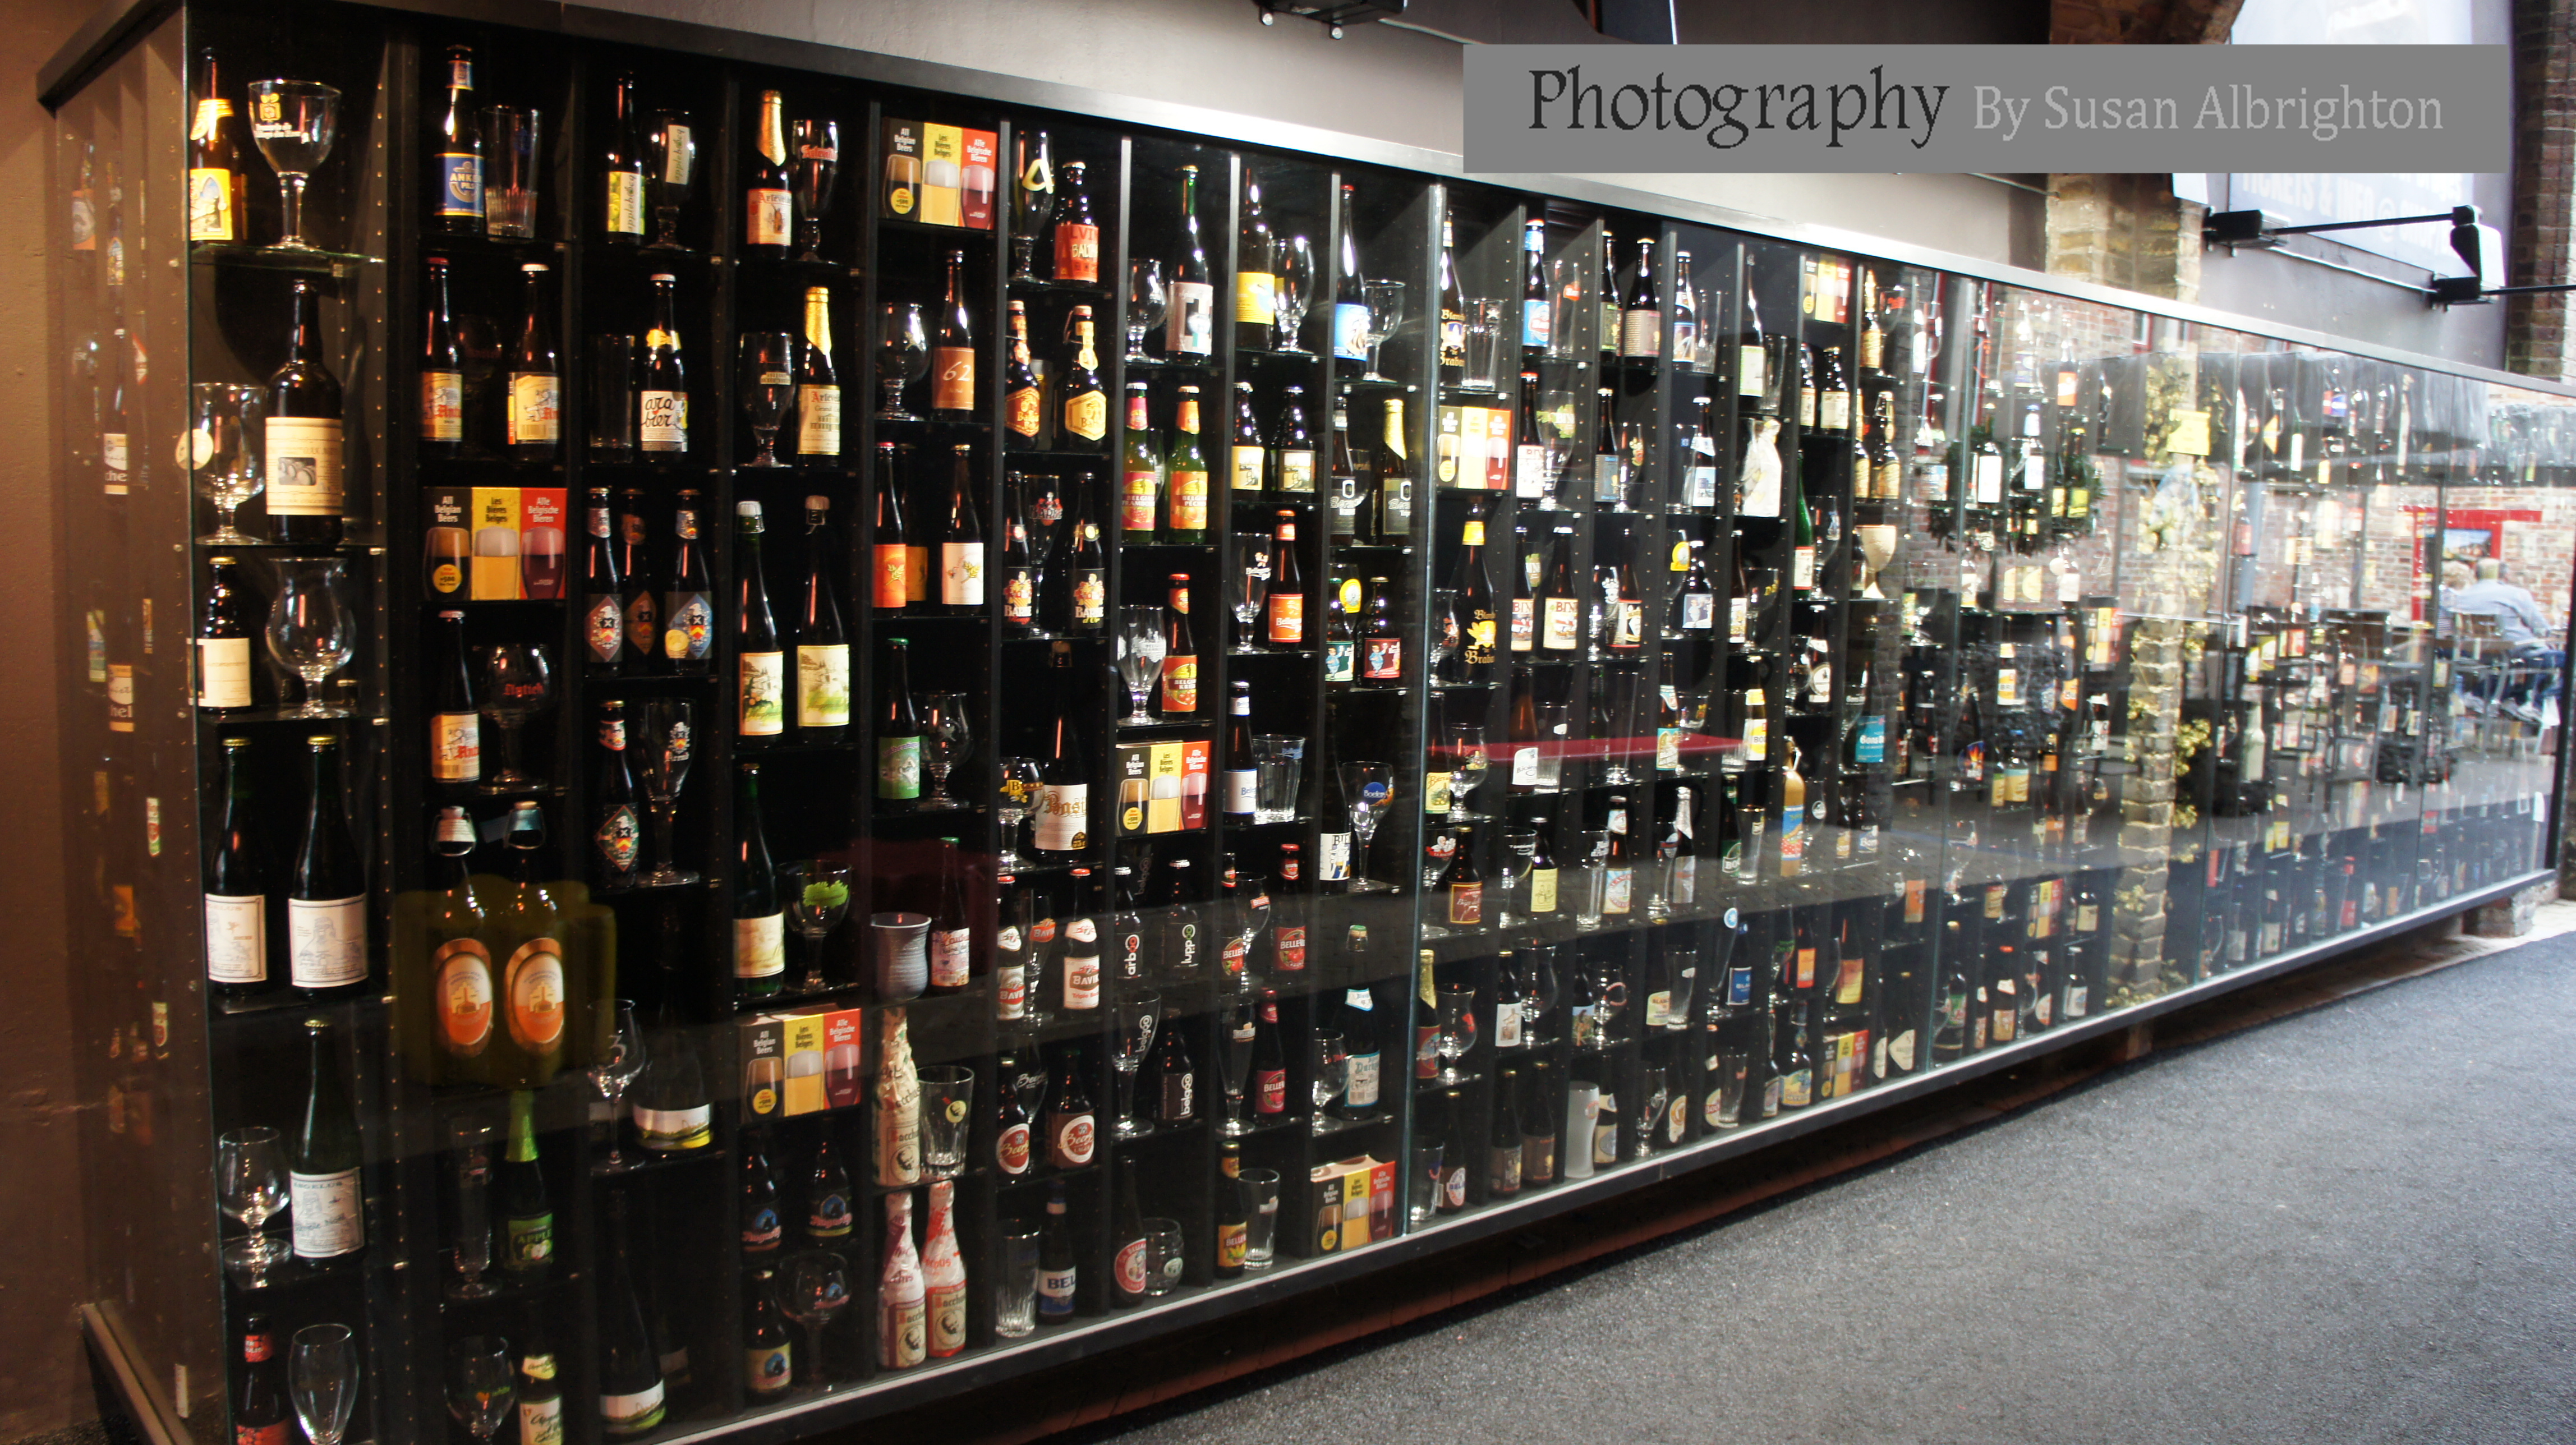 Bruges Beer Museum Brugge, Brugge Beer Museum | Brugge | Pinterest | Beer and Museums